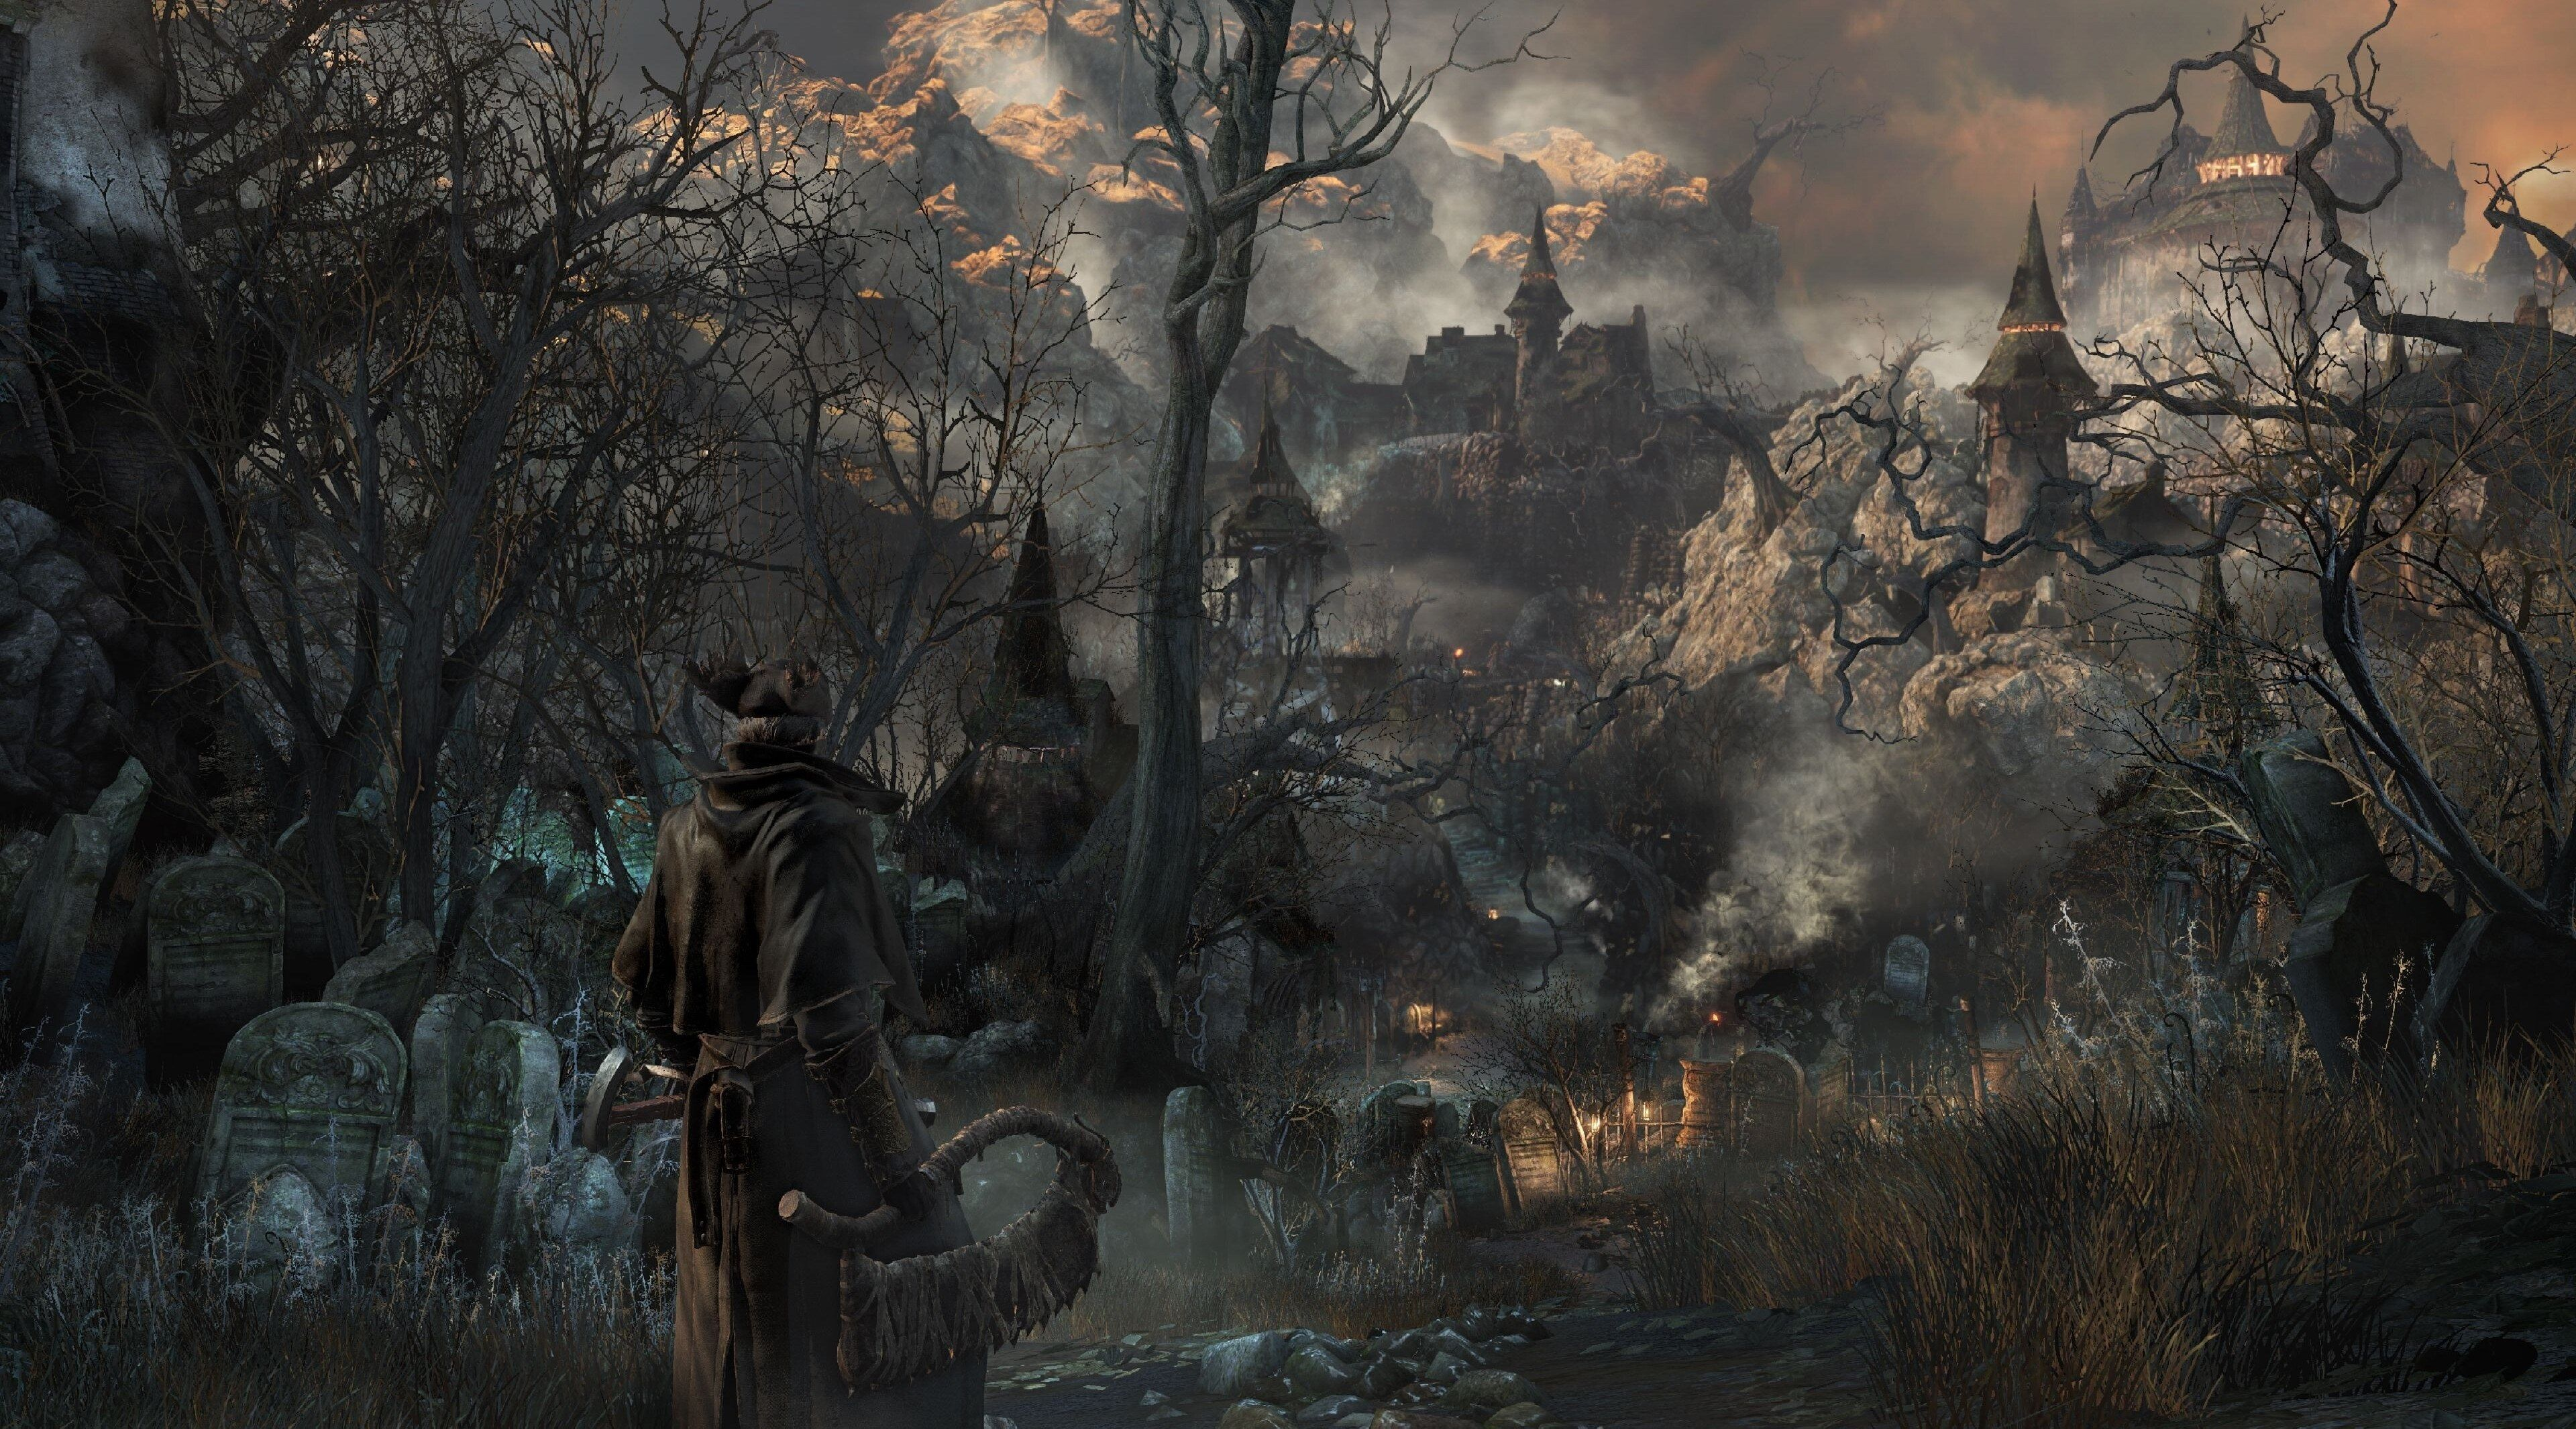 3840x2130 Bloodborne 4k New Wallpaper Background Bloodborne Bloodborne Art Dark Souls